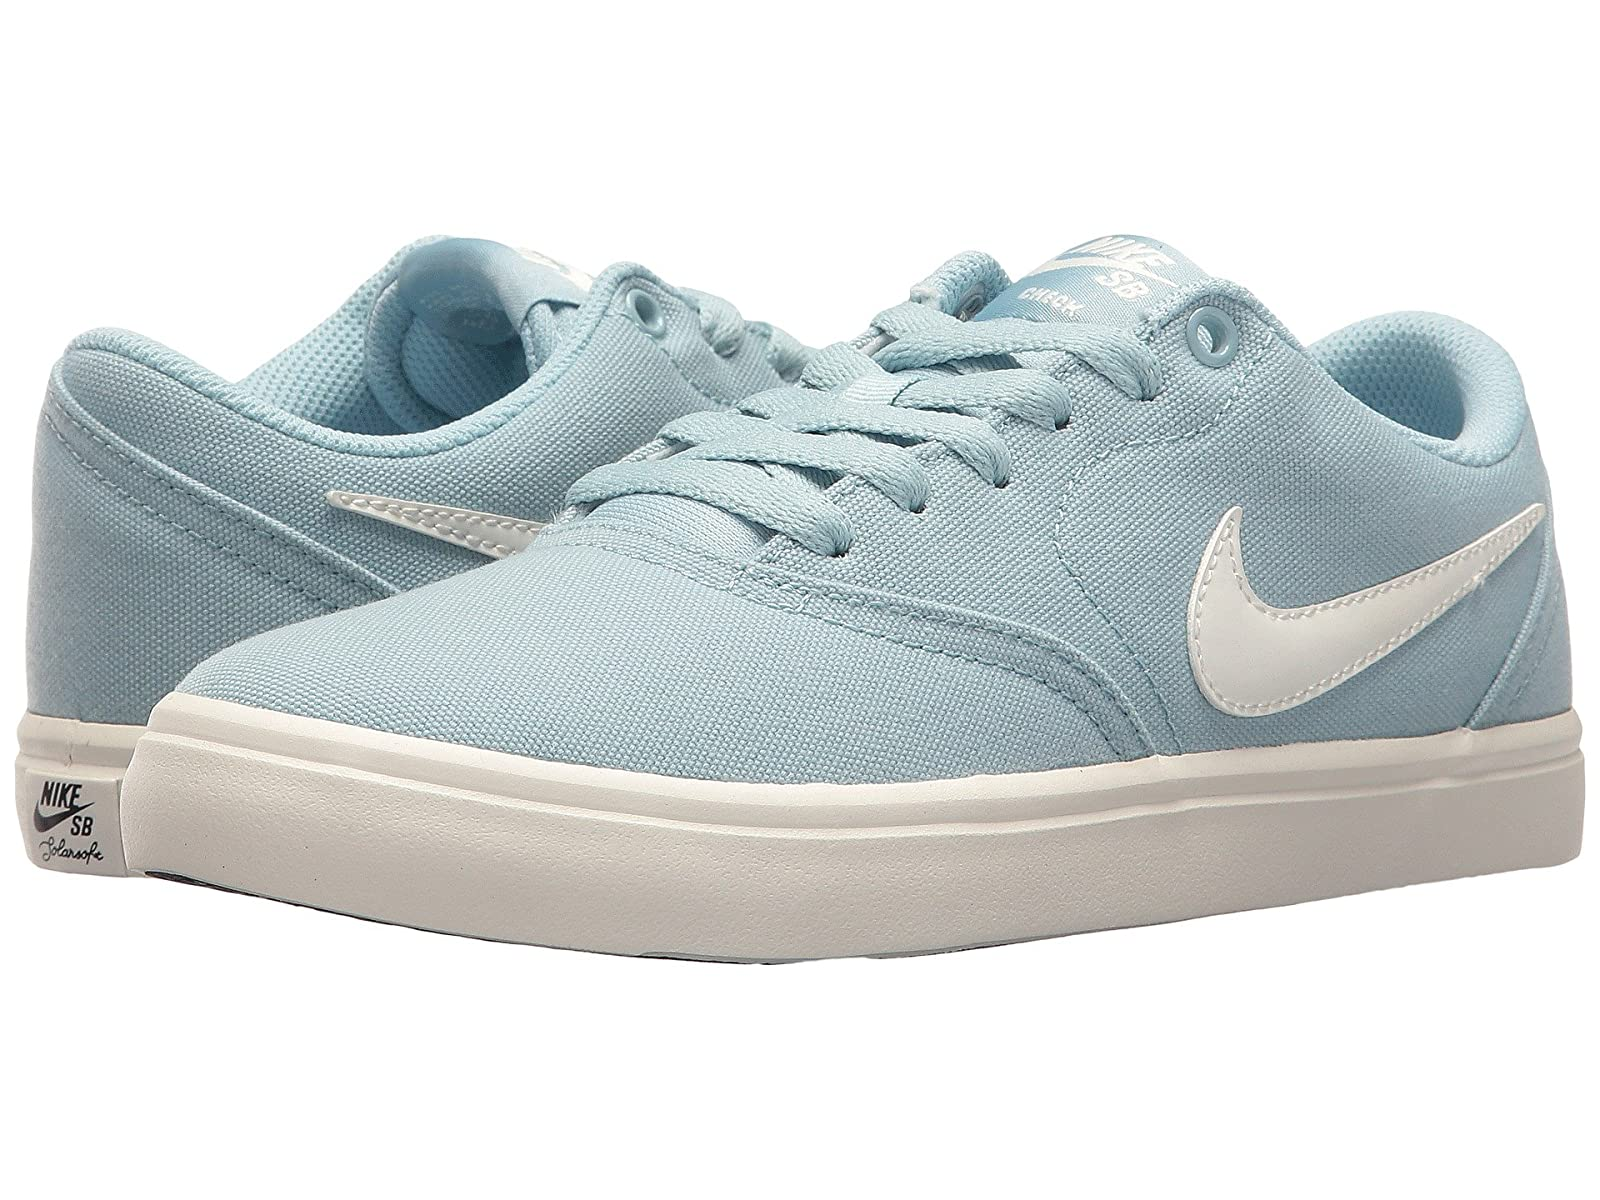 Nike SB Check SS CanvasAtmospheric grades have affordable shoes